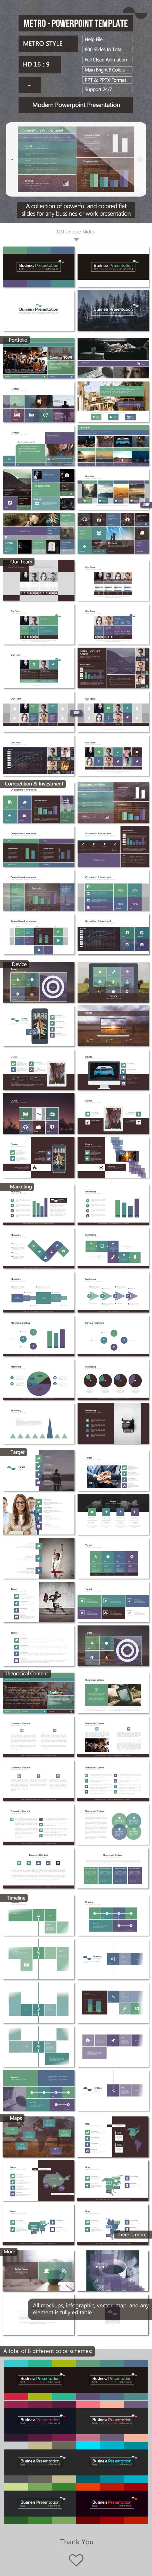 7 best PowerPoint Presentations images on Pinterest | Powerpoint ...